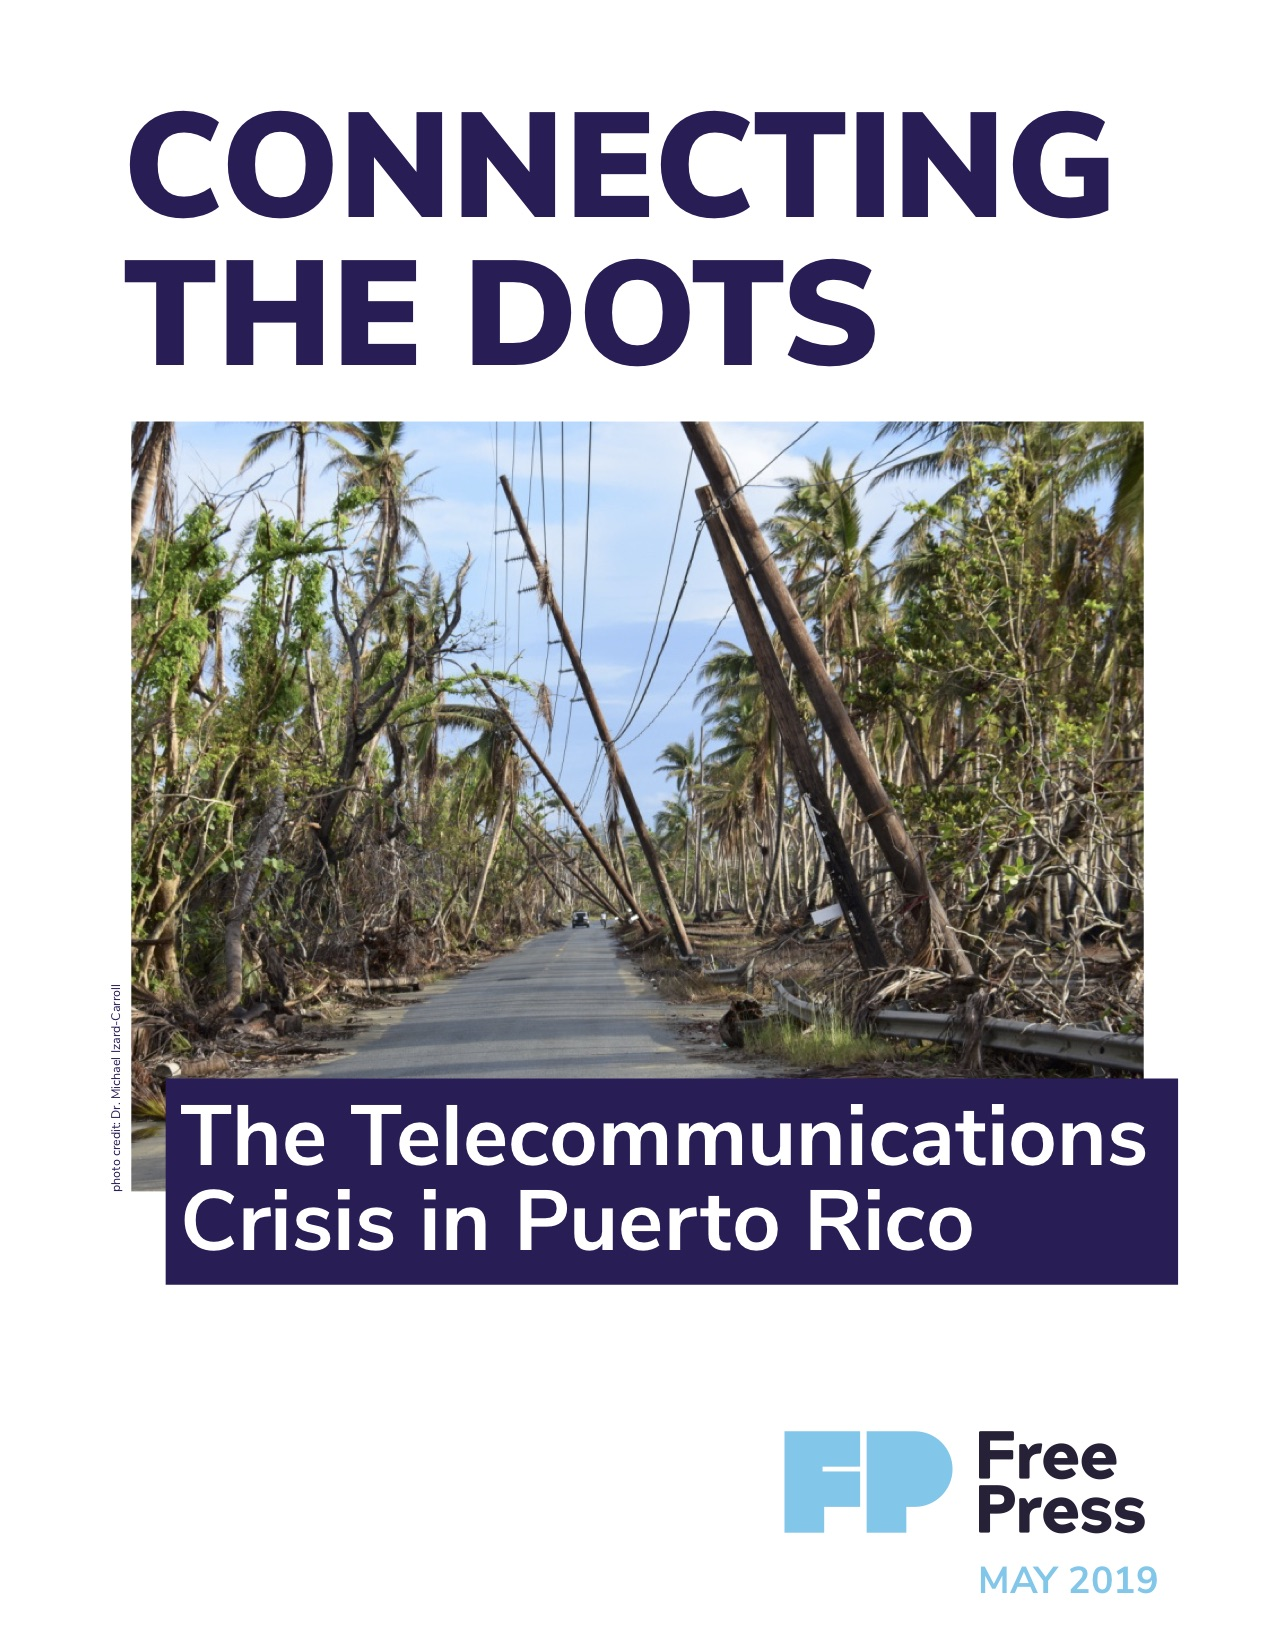 Connecting the Dots: The Telecommunications Crisis in Puerto Rico